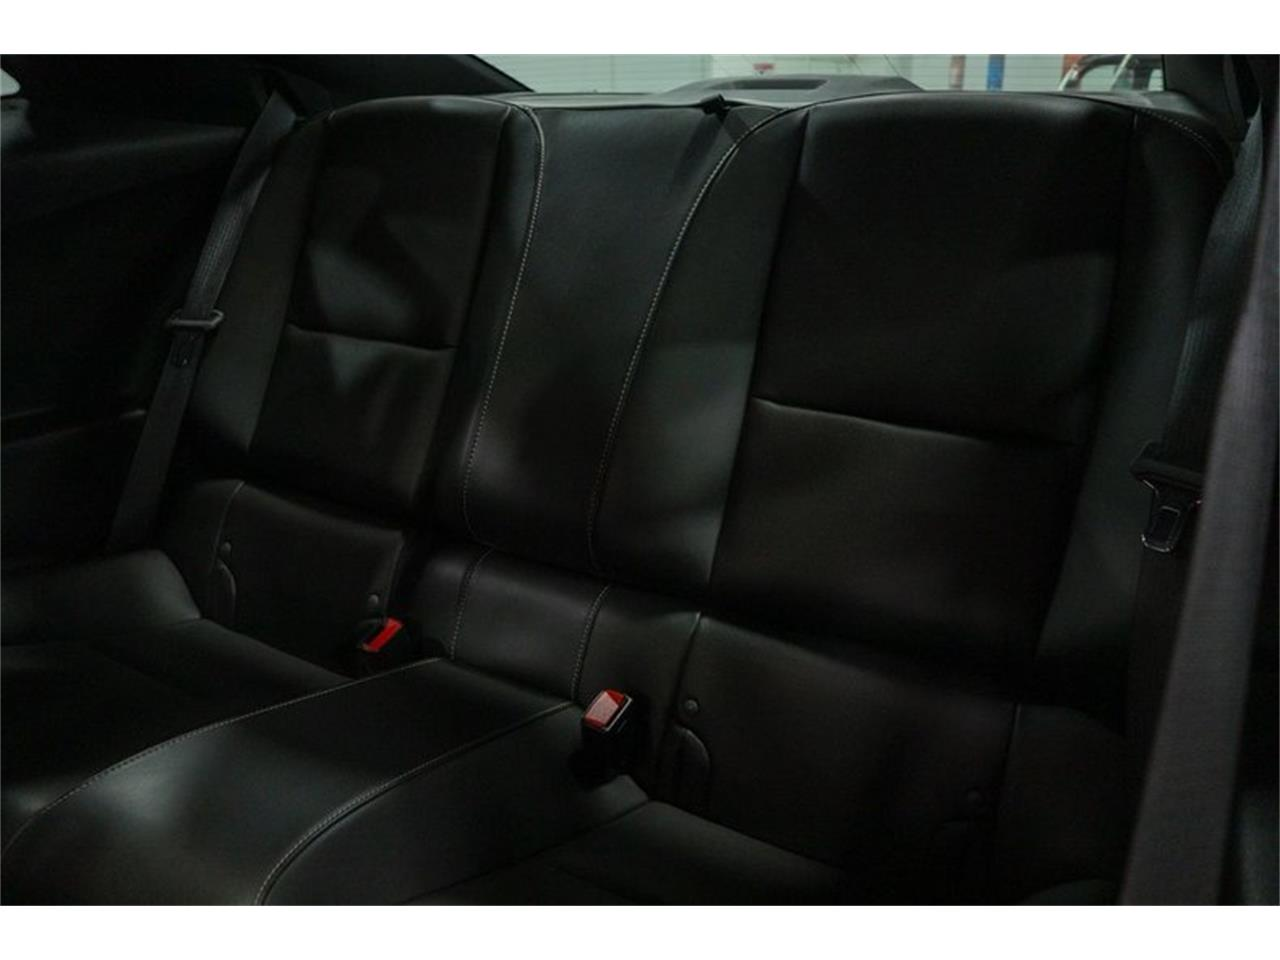 2010 Chevrolet Camaro (CC-1421774) for sale in Kentwood, Michigan